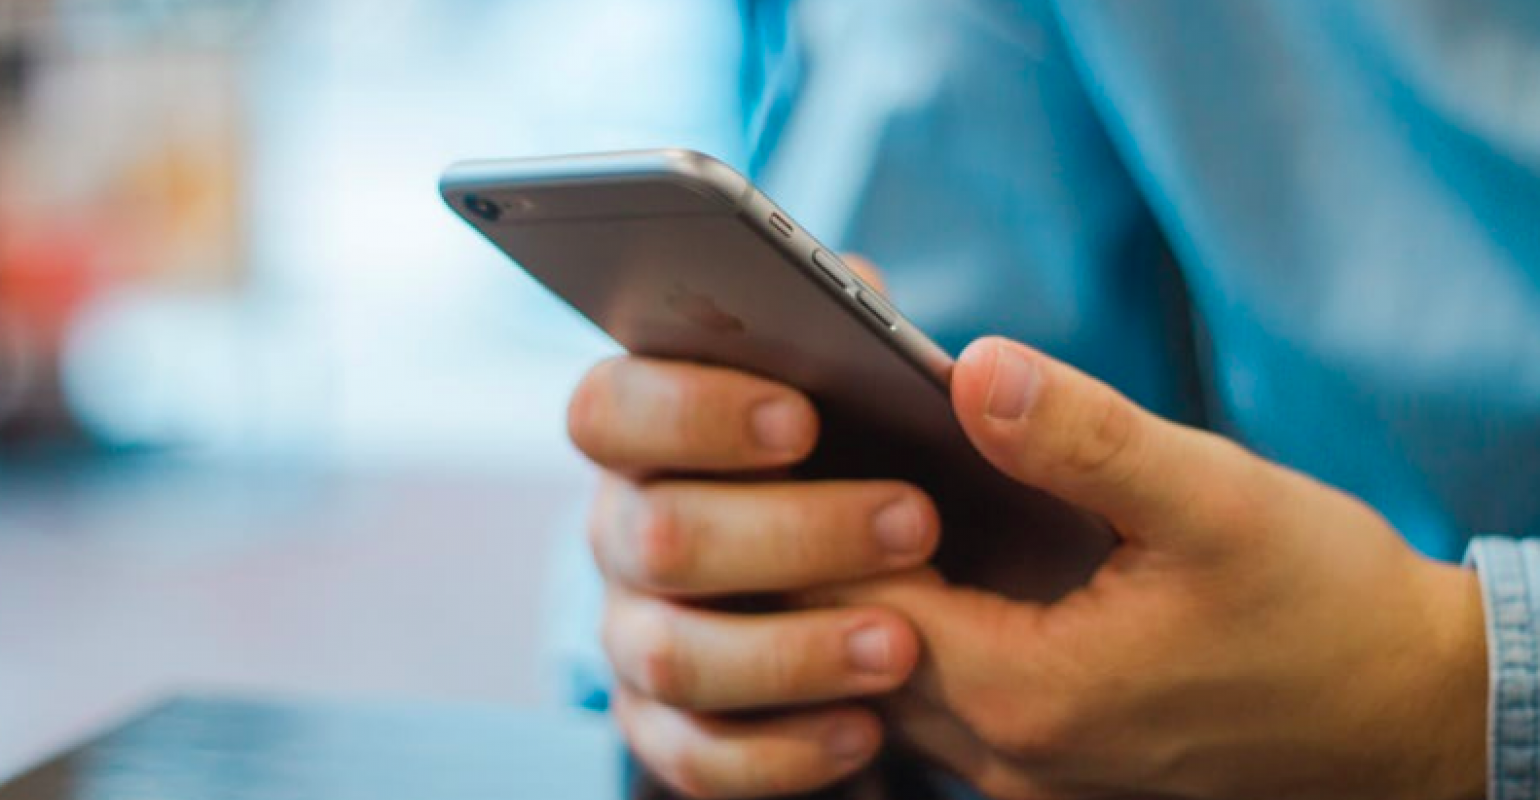 5 Ways Great Mobile Connectivity Can Give Your Business An Edge